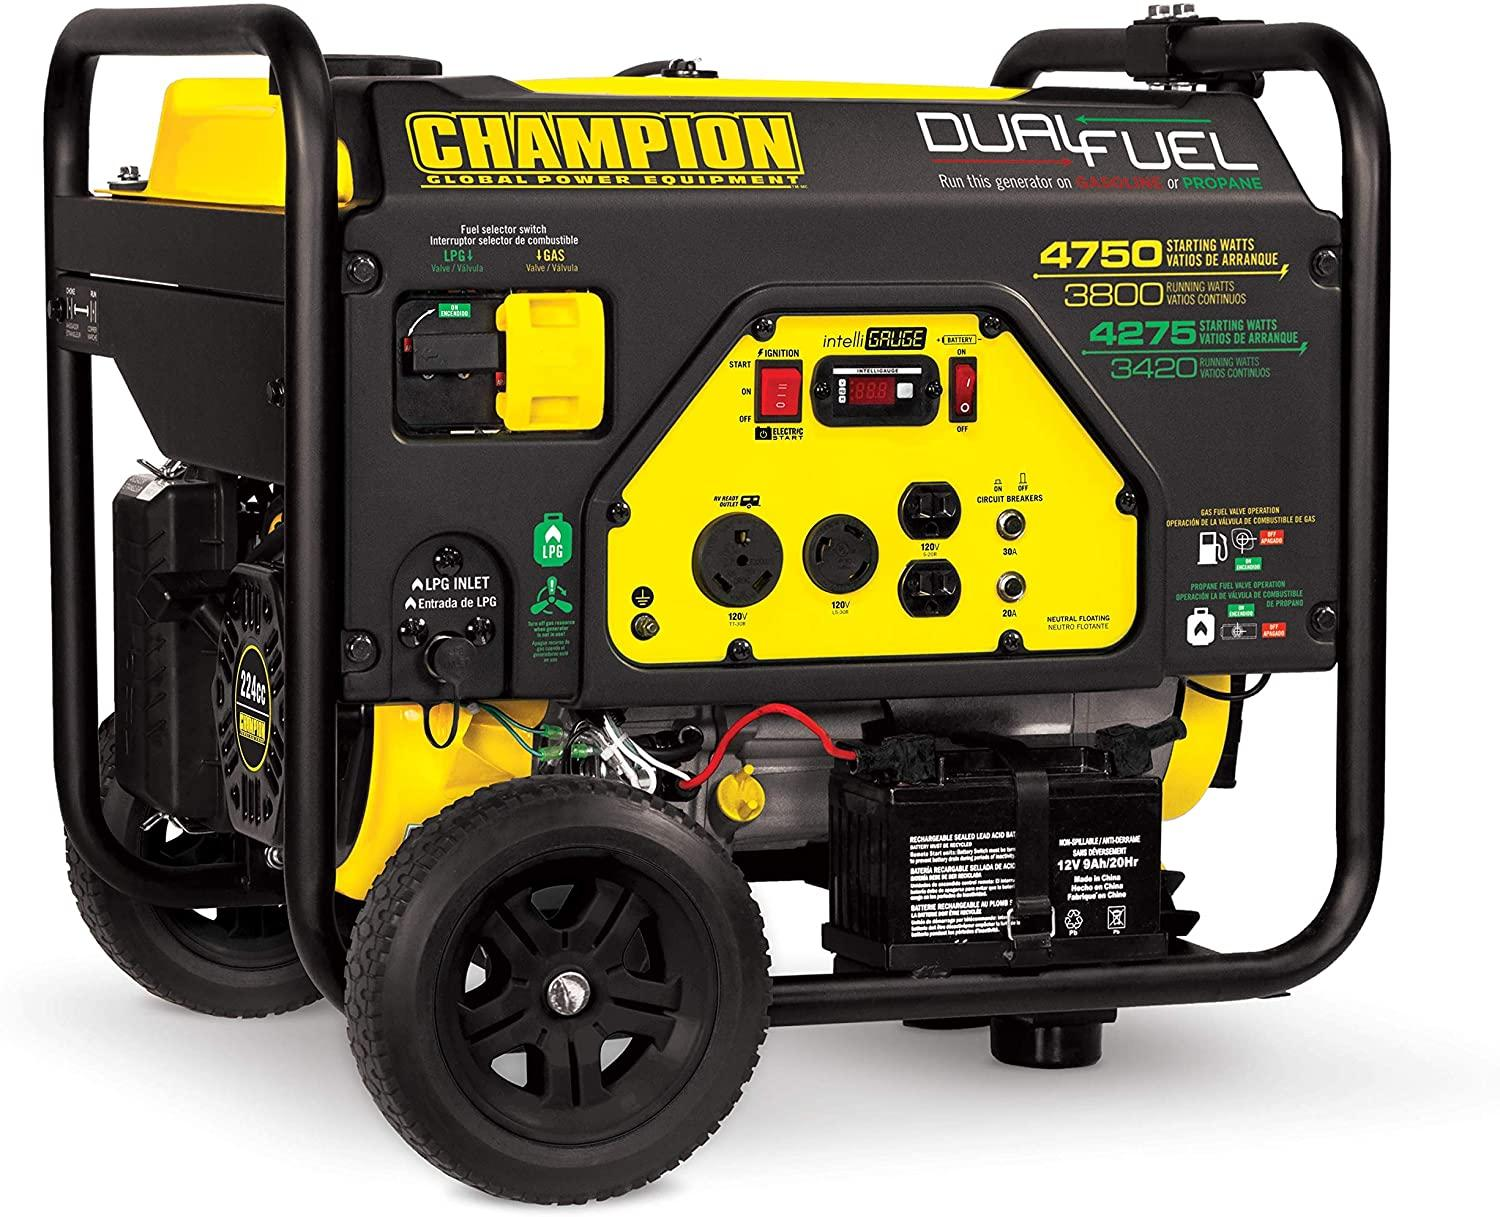 CHAMPION DUAL FUEL - best generator 2020